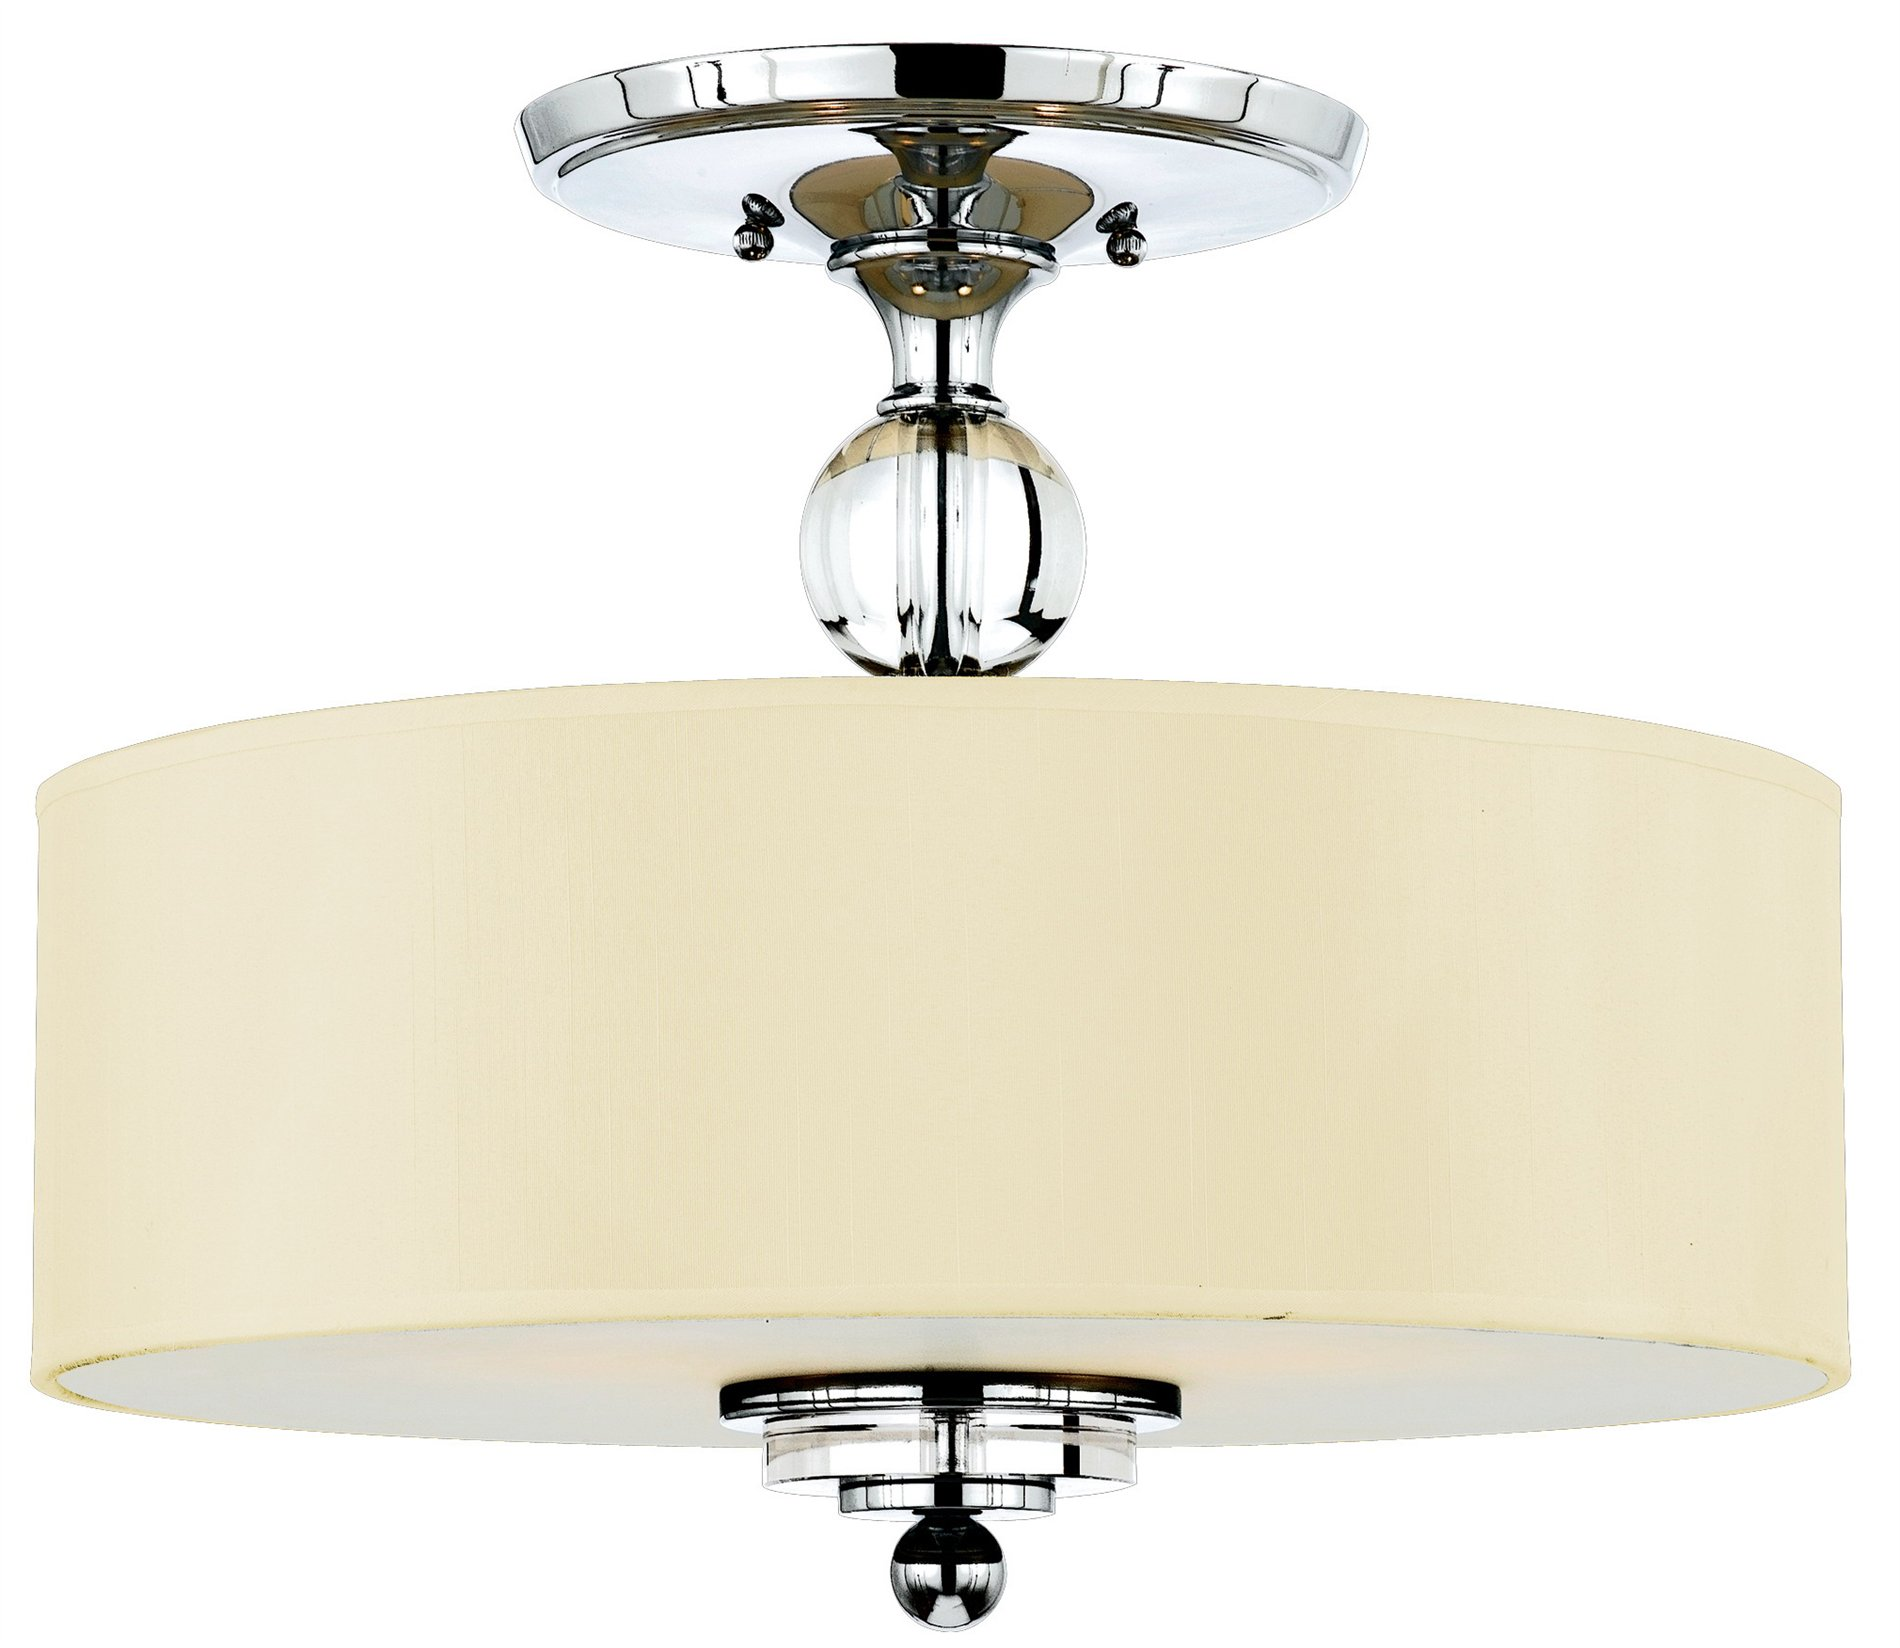 Cieling Lights Quoizel Dw1717c Downtown Modern Contemporary Semi Flush